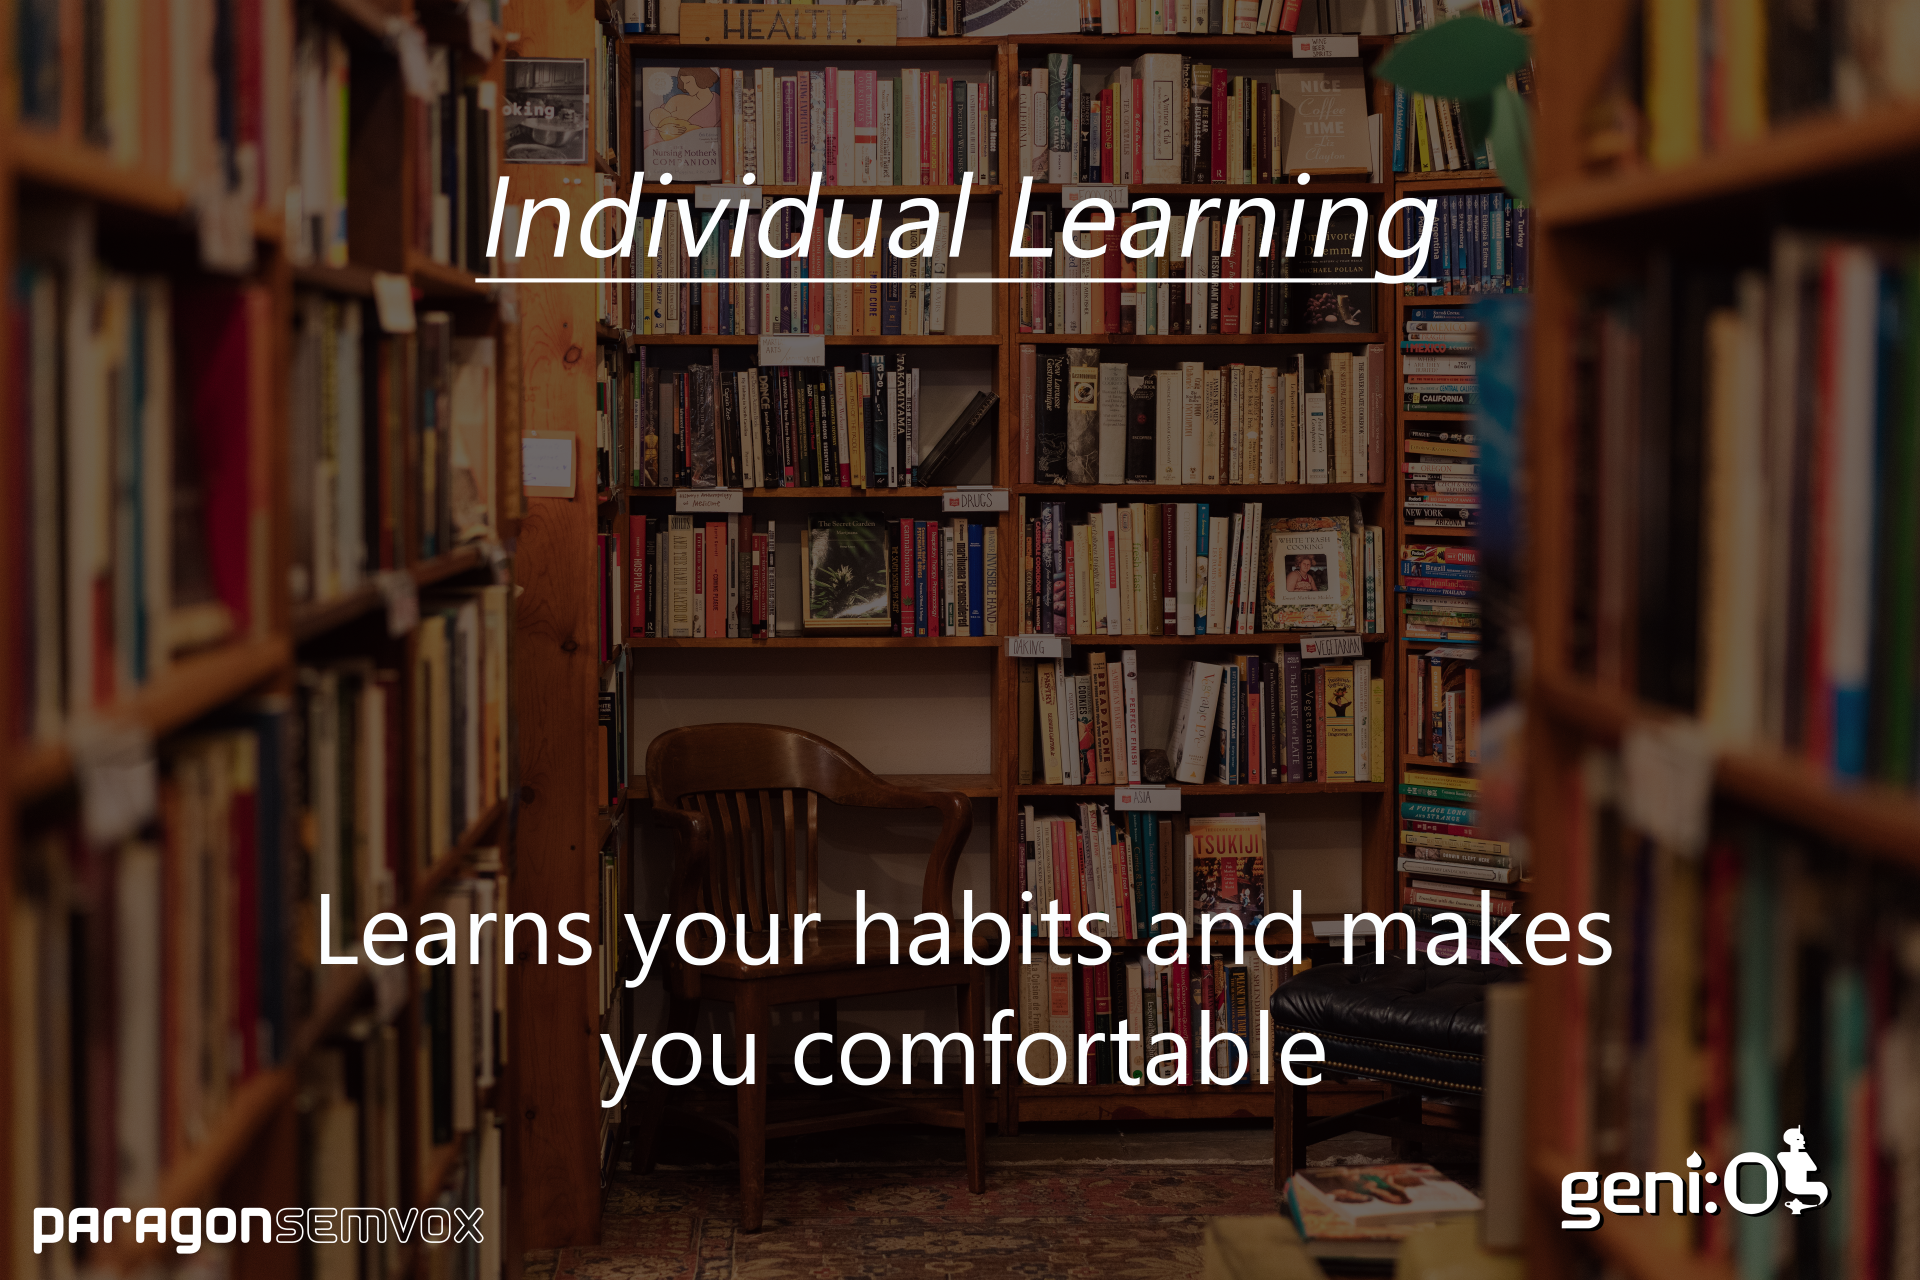 geni:OS - Learns your habits and makes you comfortable